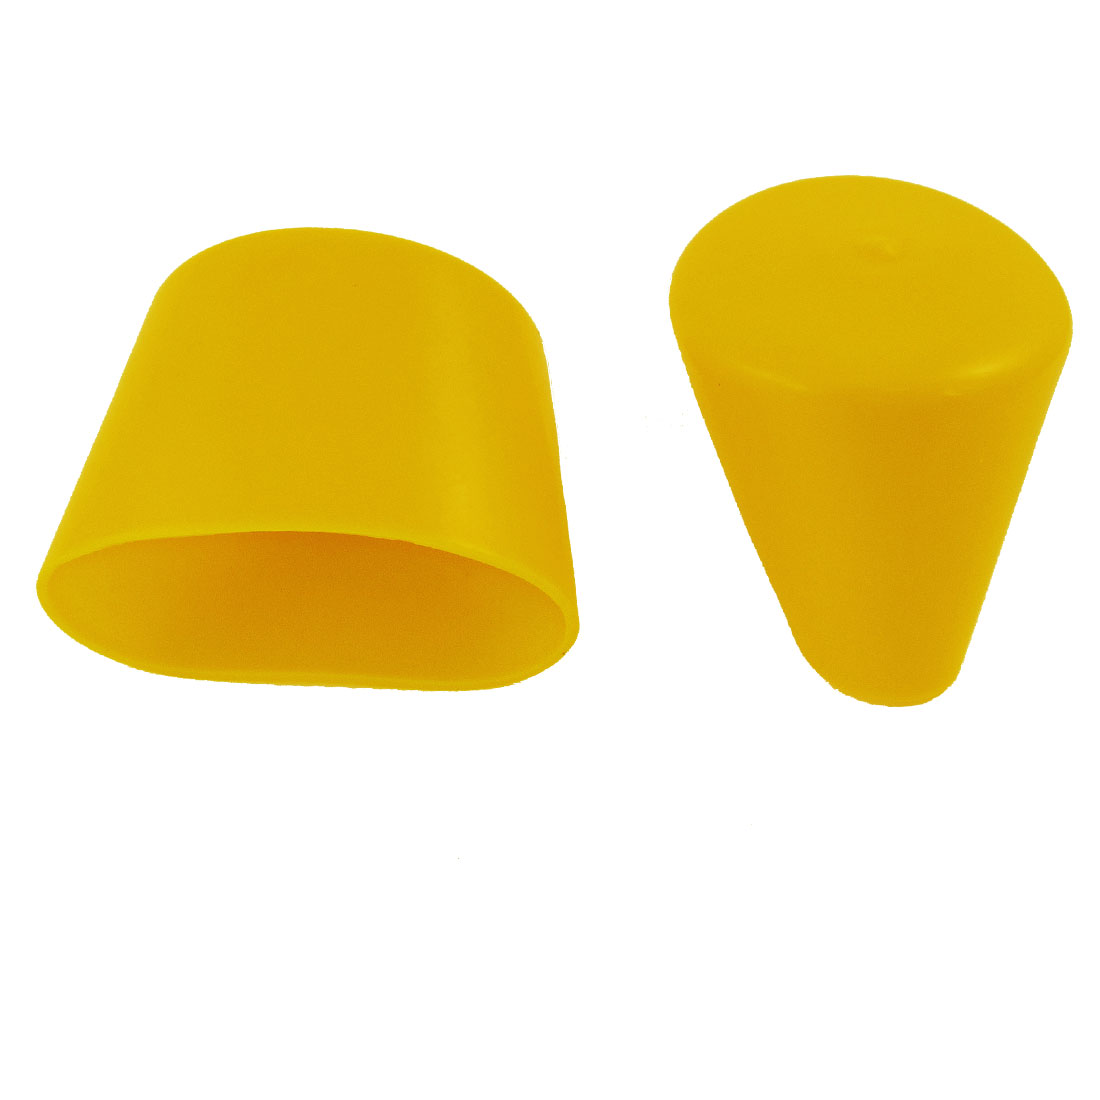 Yellow Rubber 70mm Dia Chair Table Couch Leg Foot Covers Protectors 2 Pcs